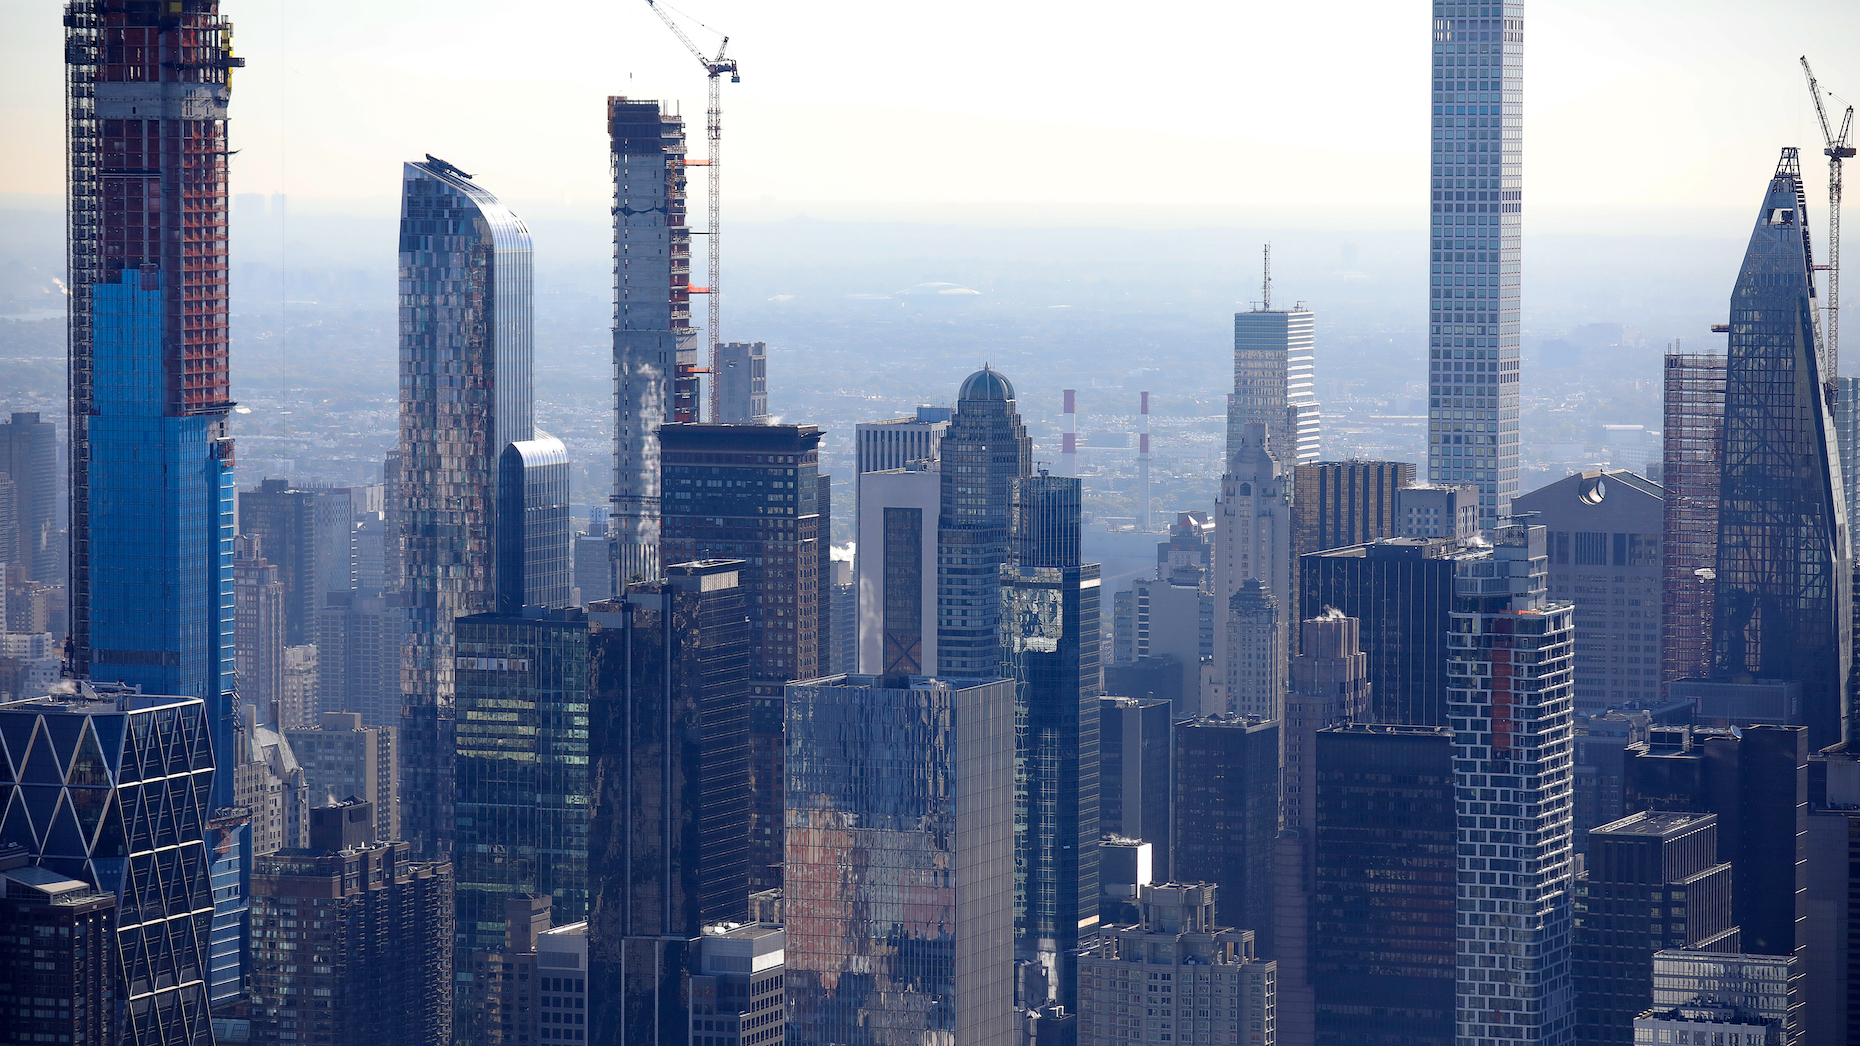 Leaky pipes and stalled elevators: Living a life of luxury at 432 Park